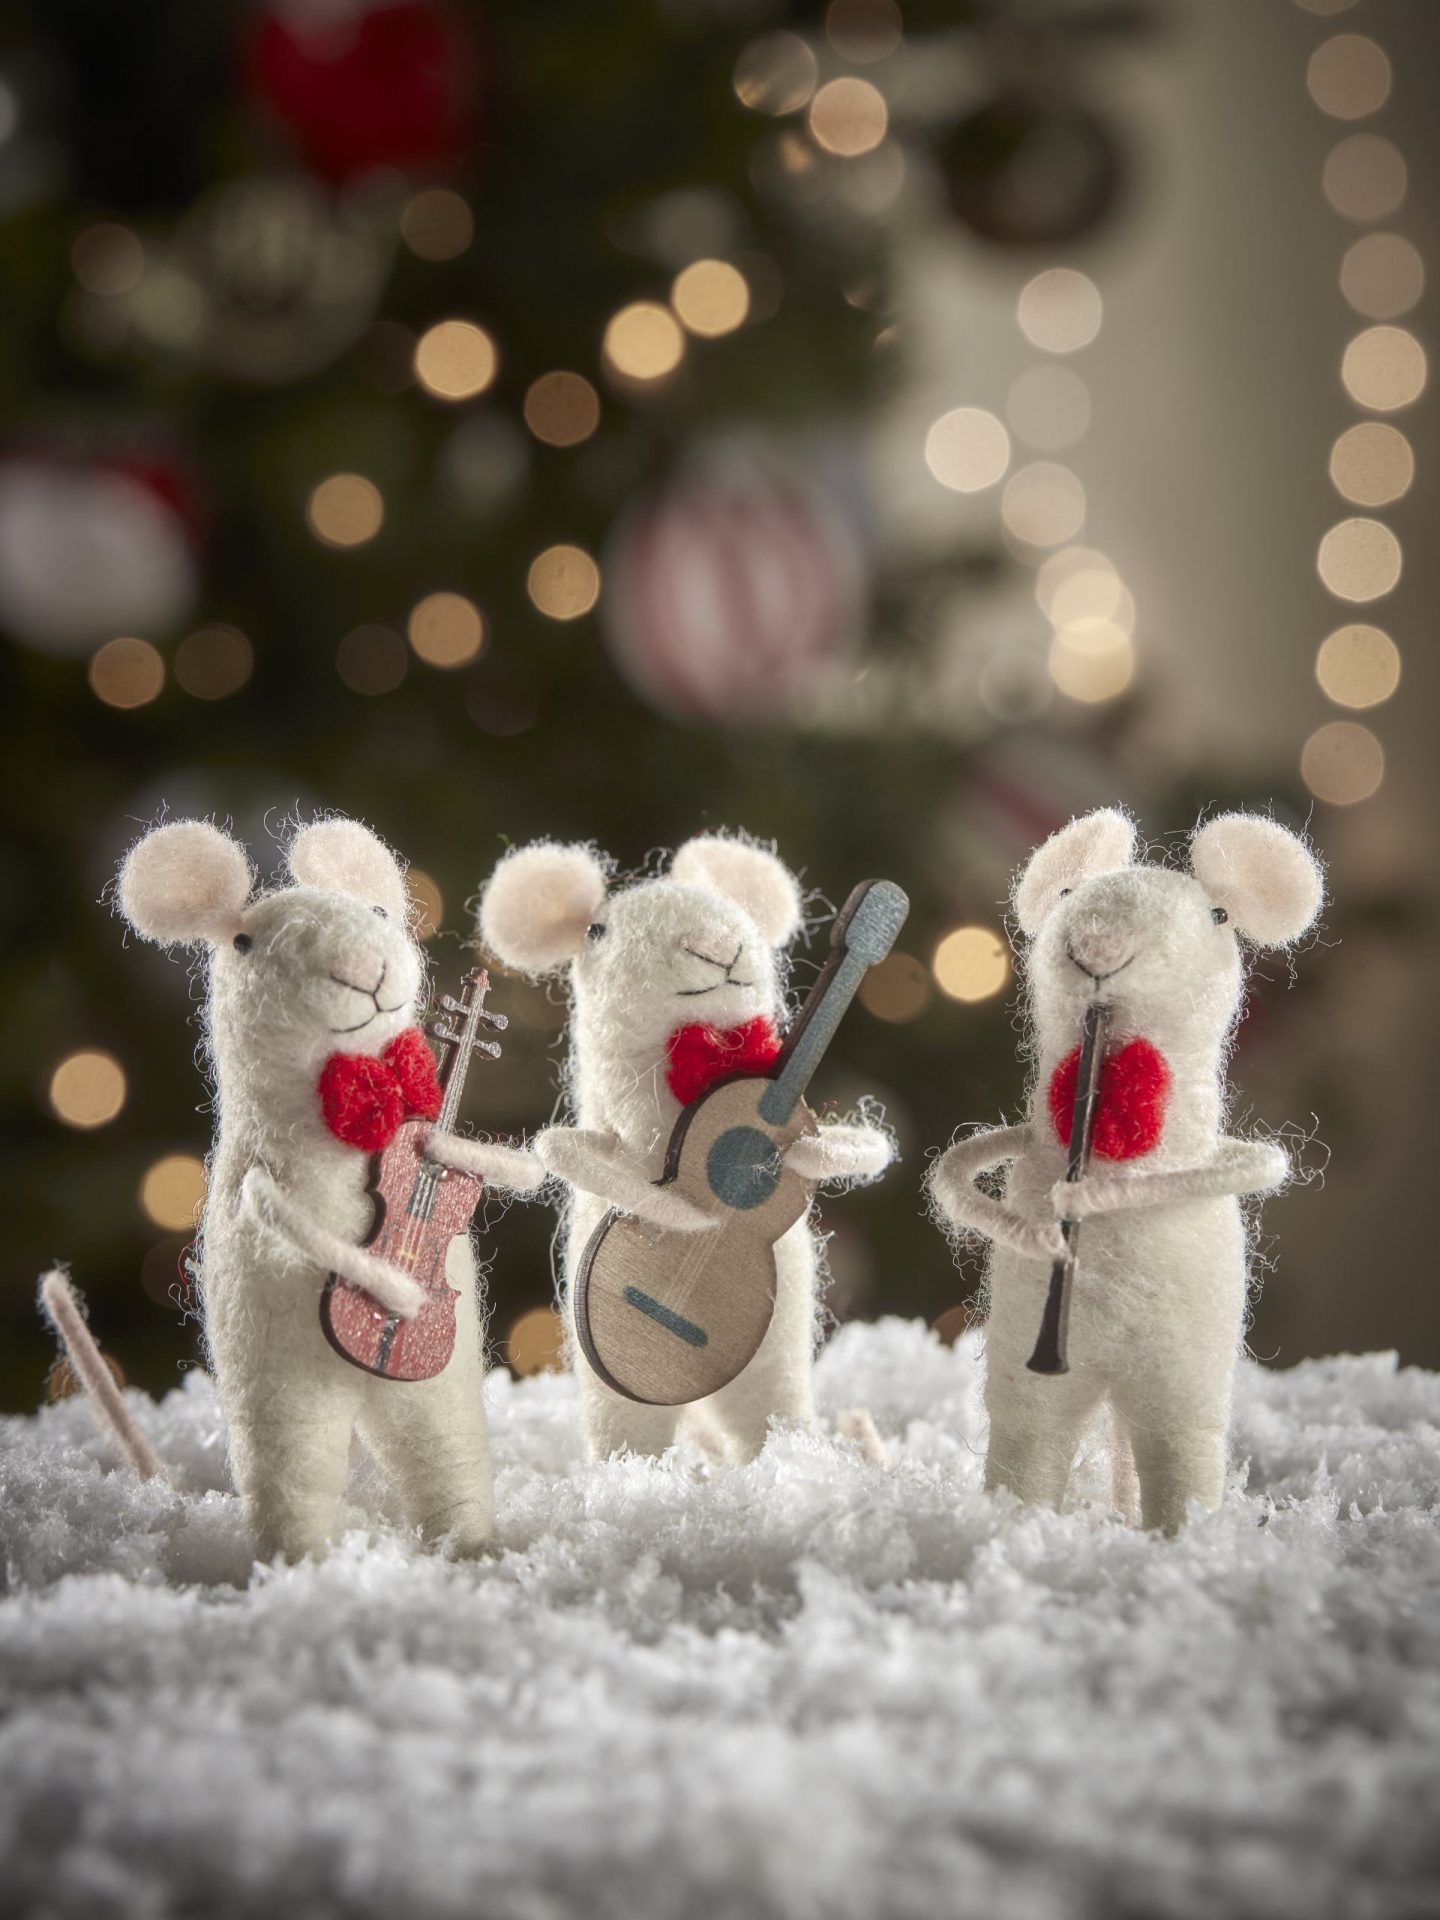 Felt mice band from Cox and cox